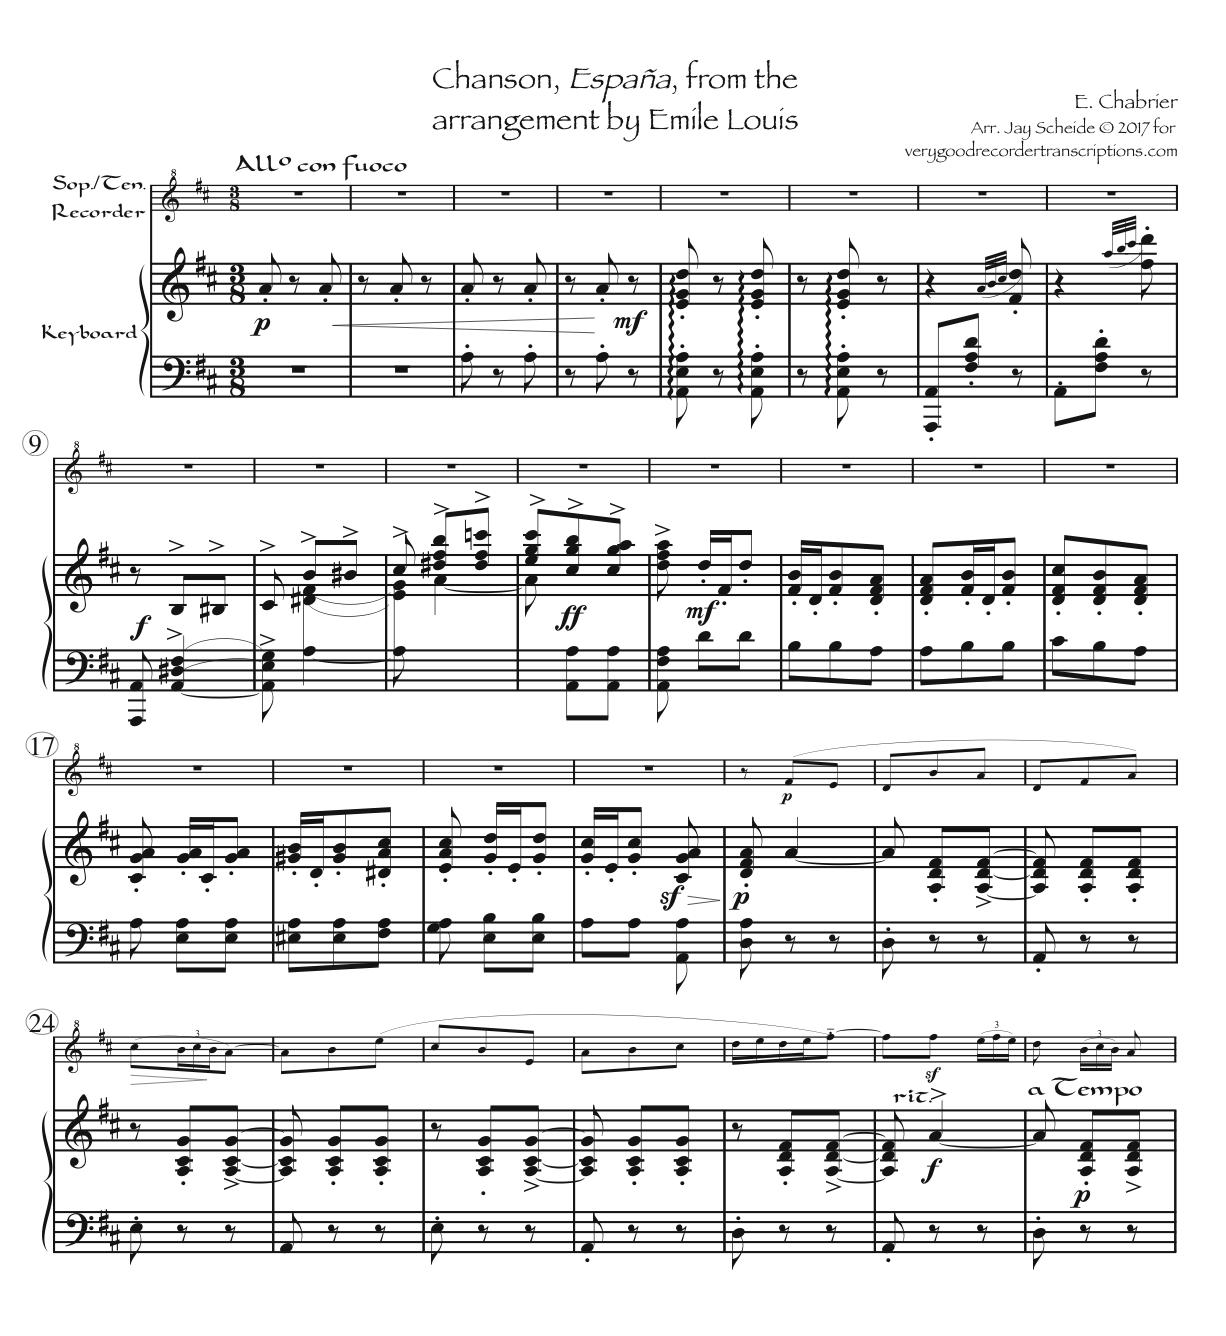 España, from the song arrangement, for soprano or tenor recorder, two versions